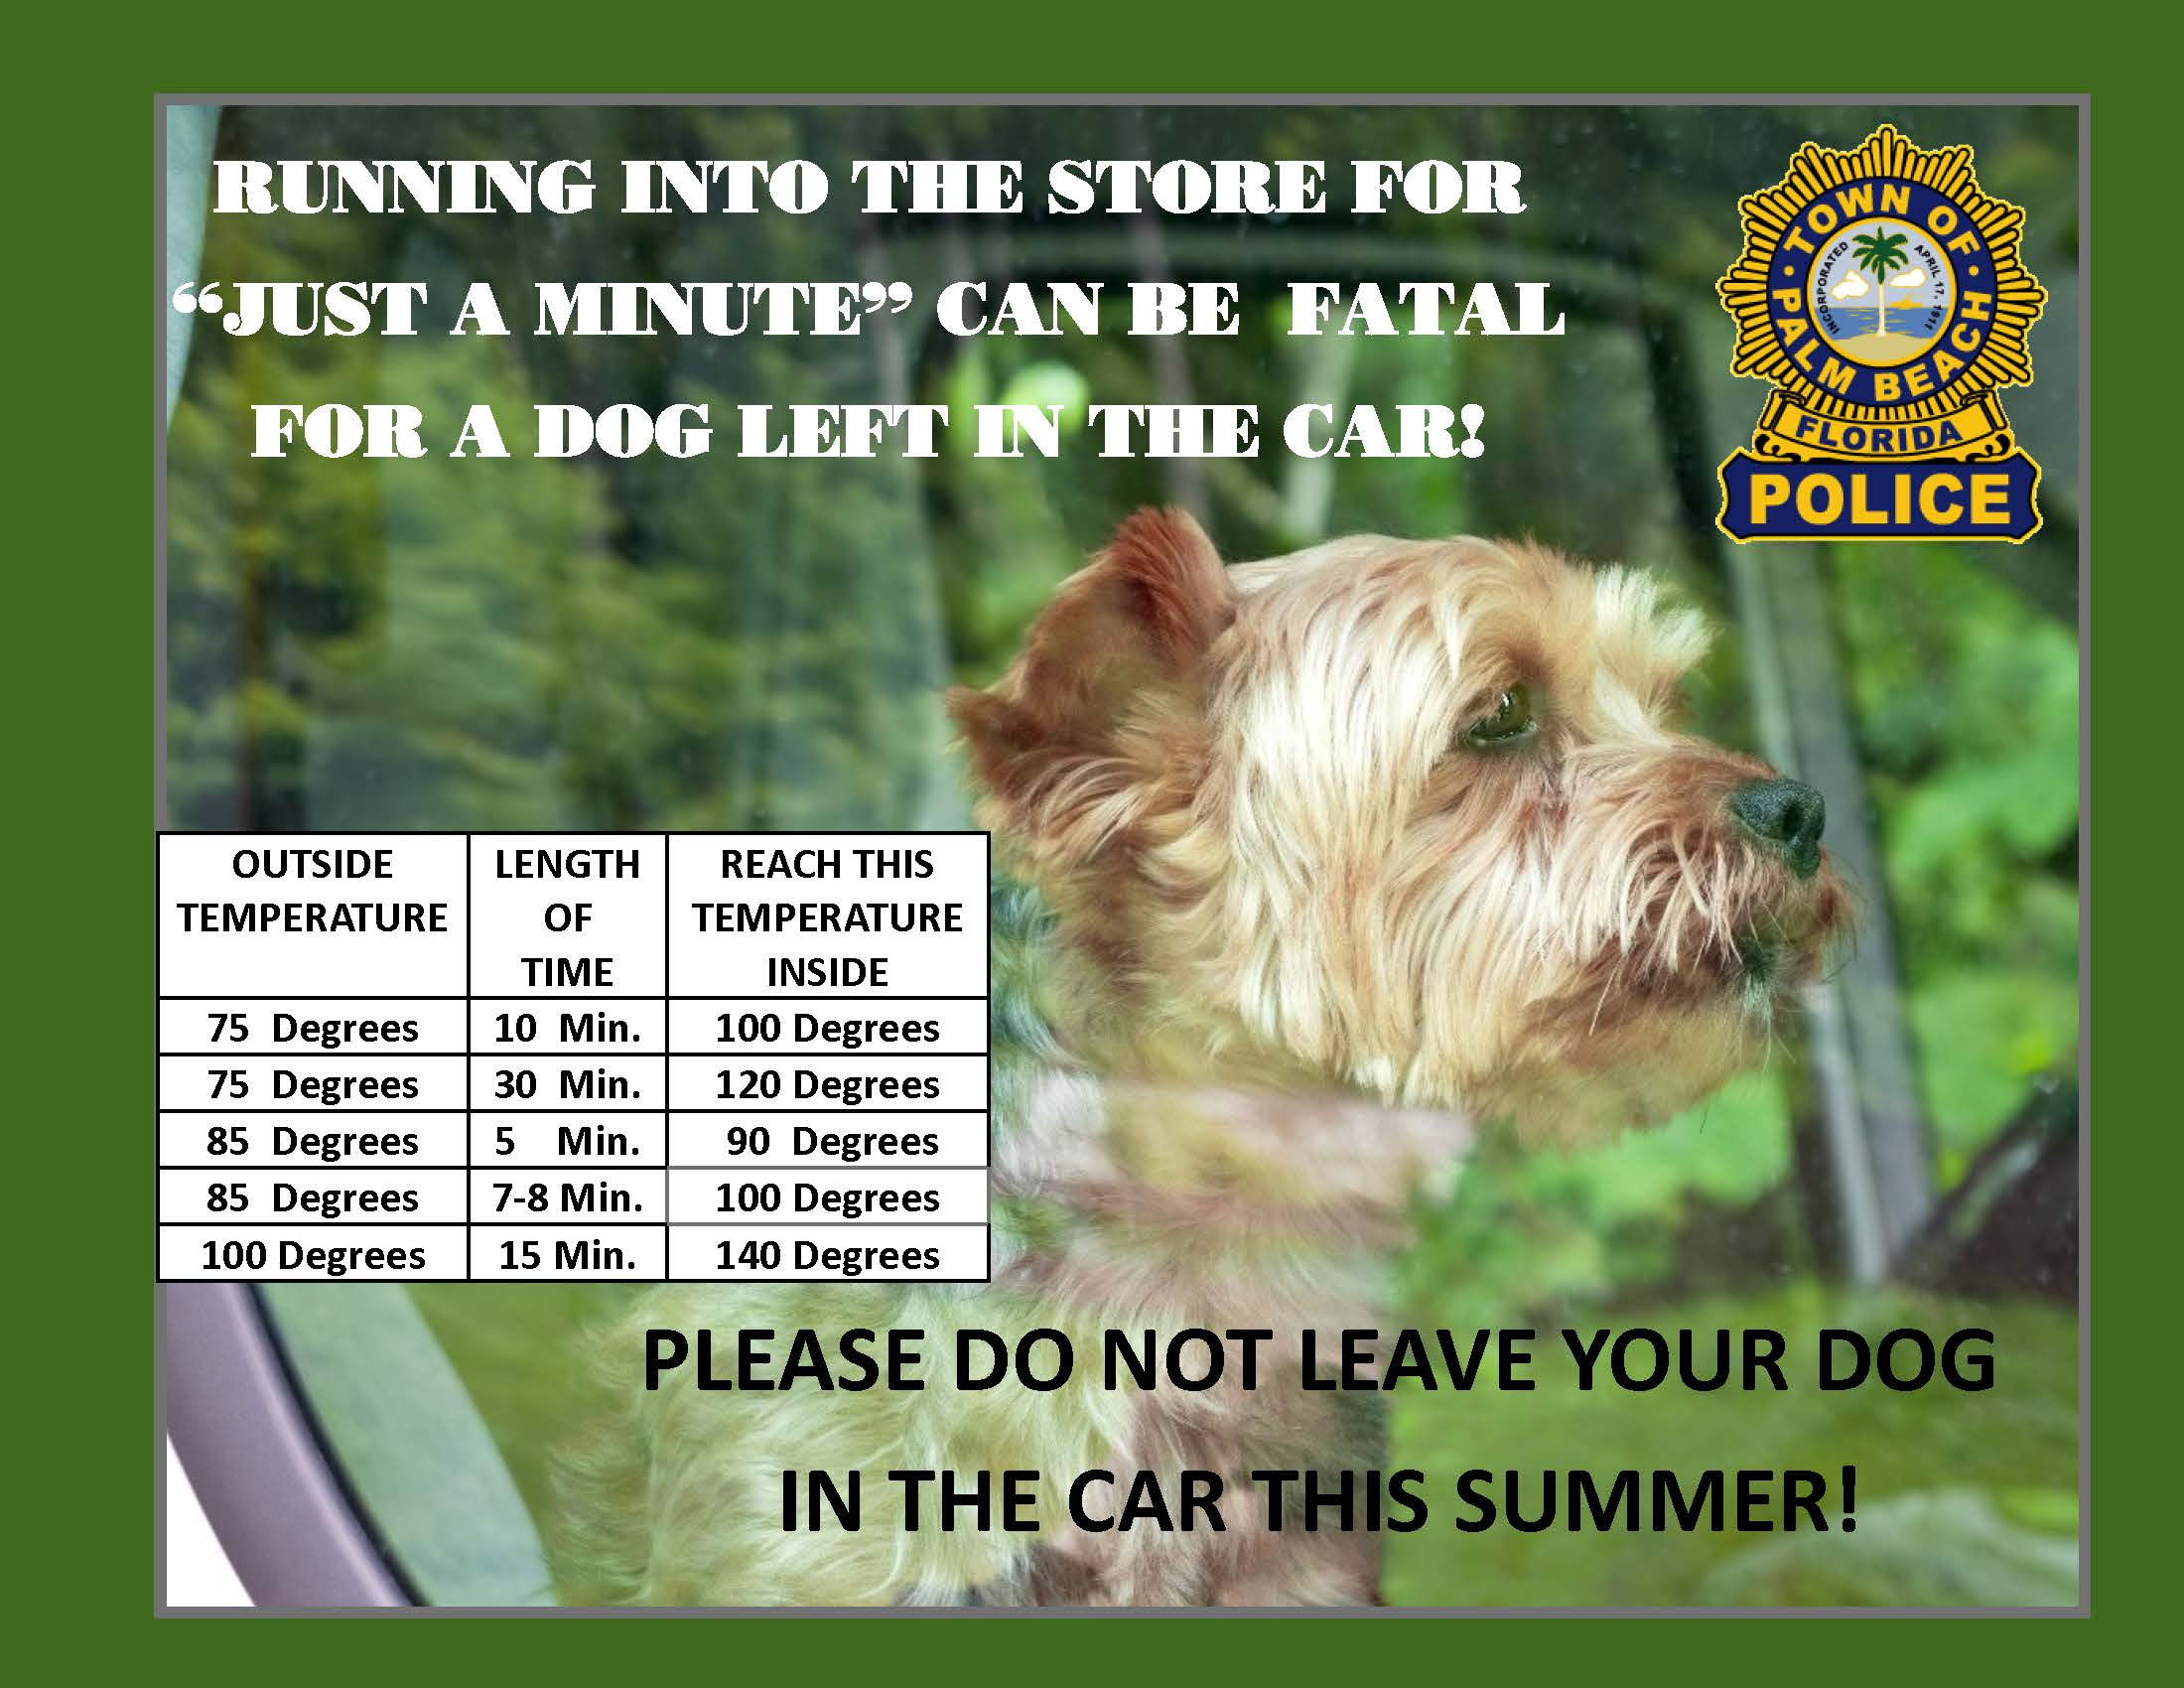 Dog in Car Warning Slide 2019